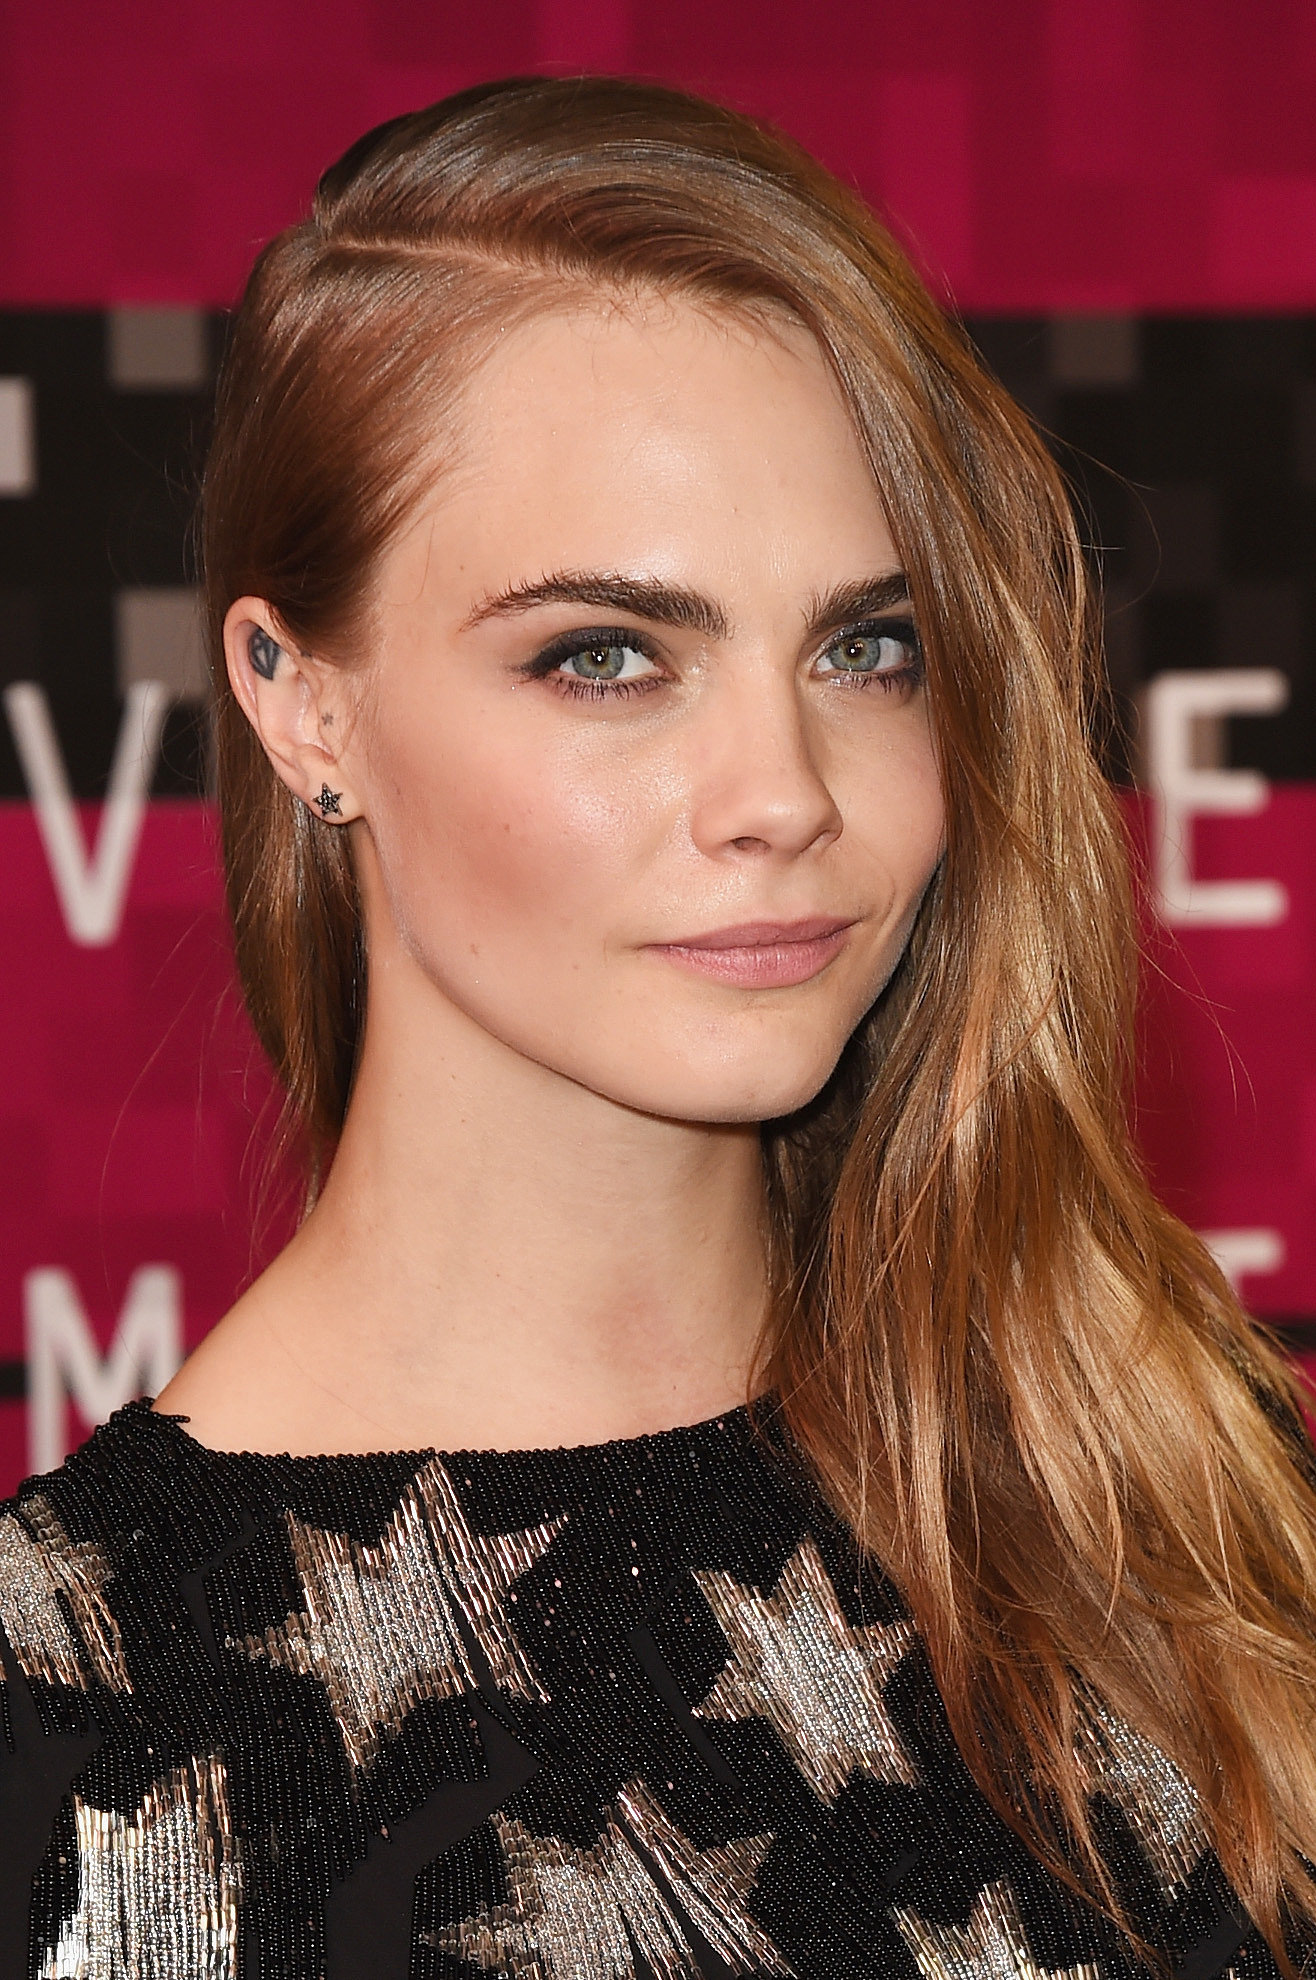 how to look like cara delevingne makeup wikihow